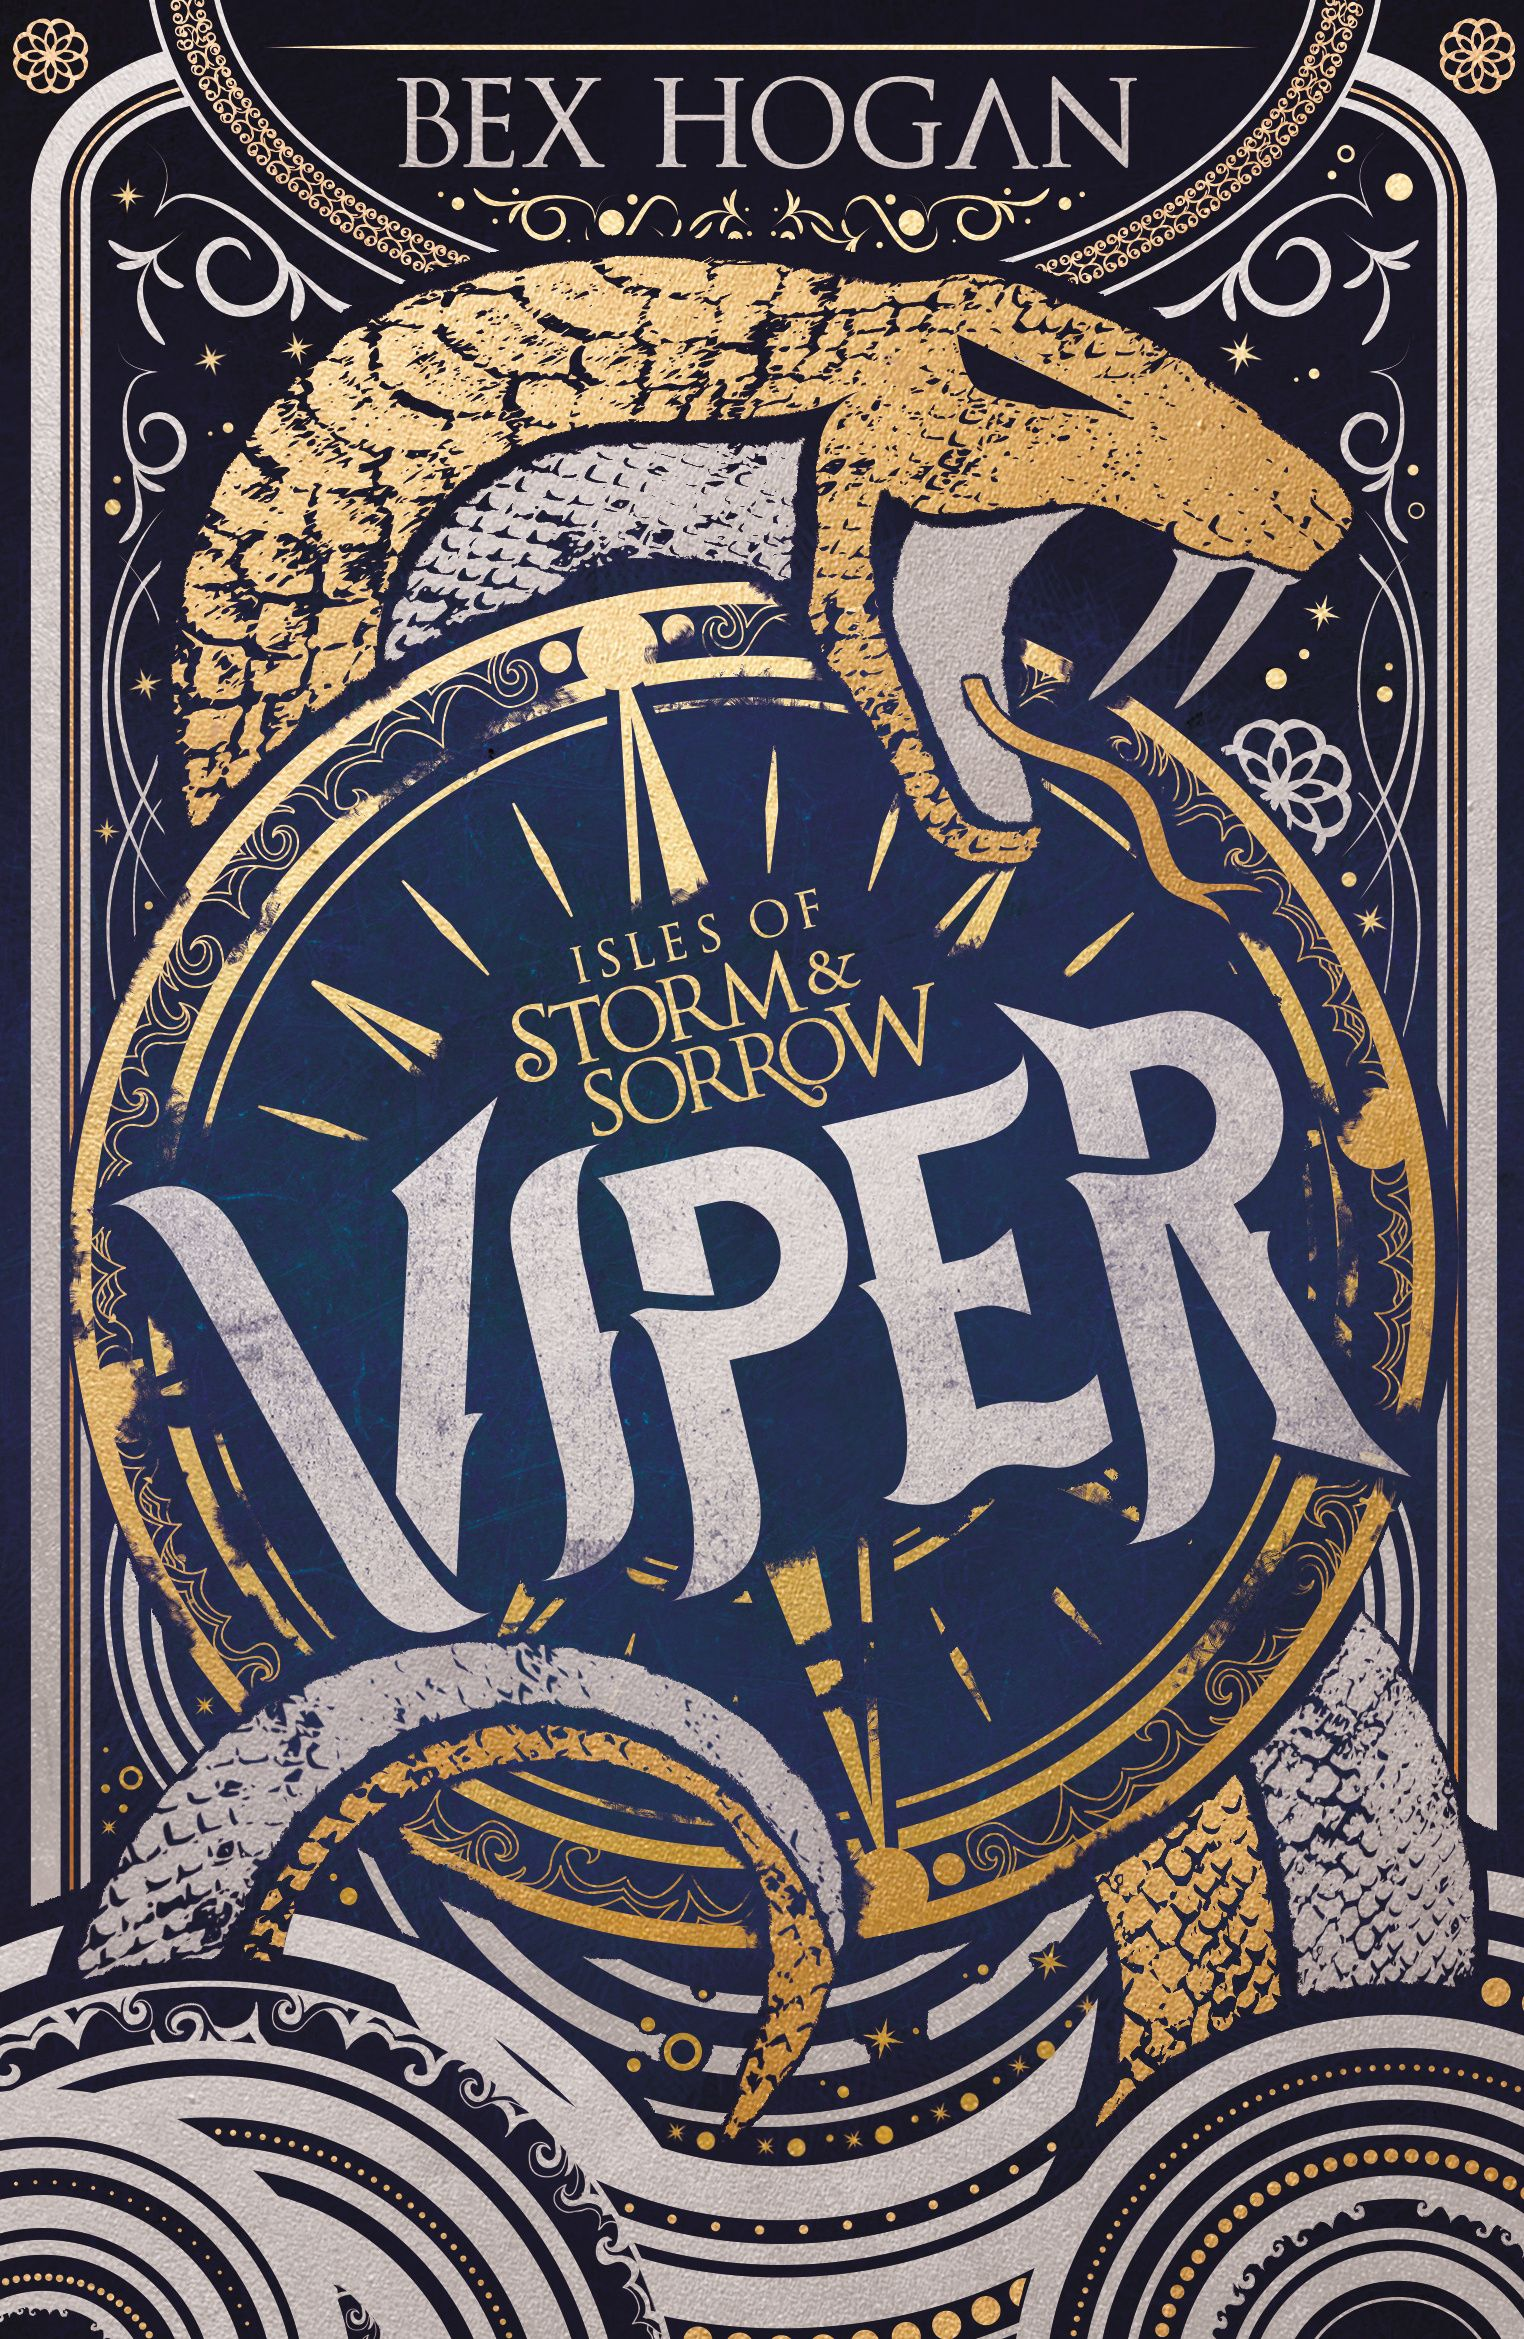 Image result for viper book cover